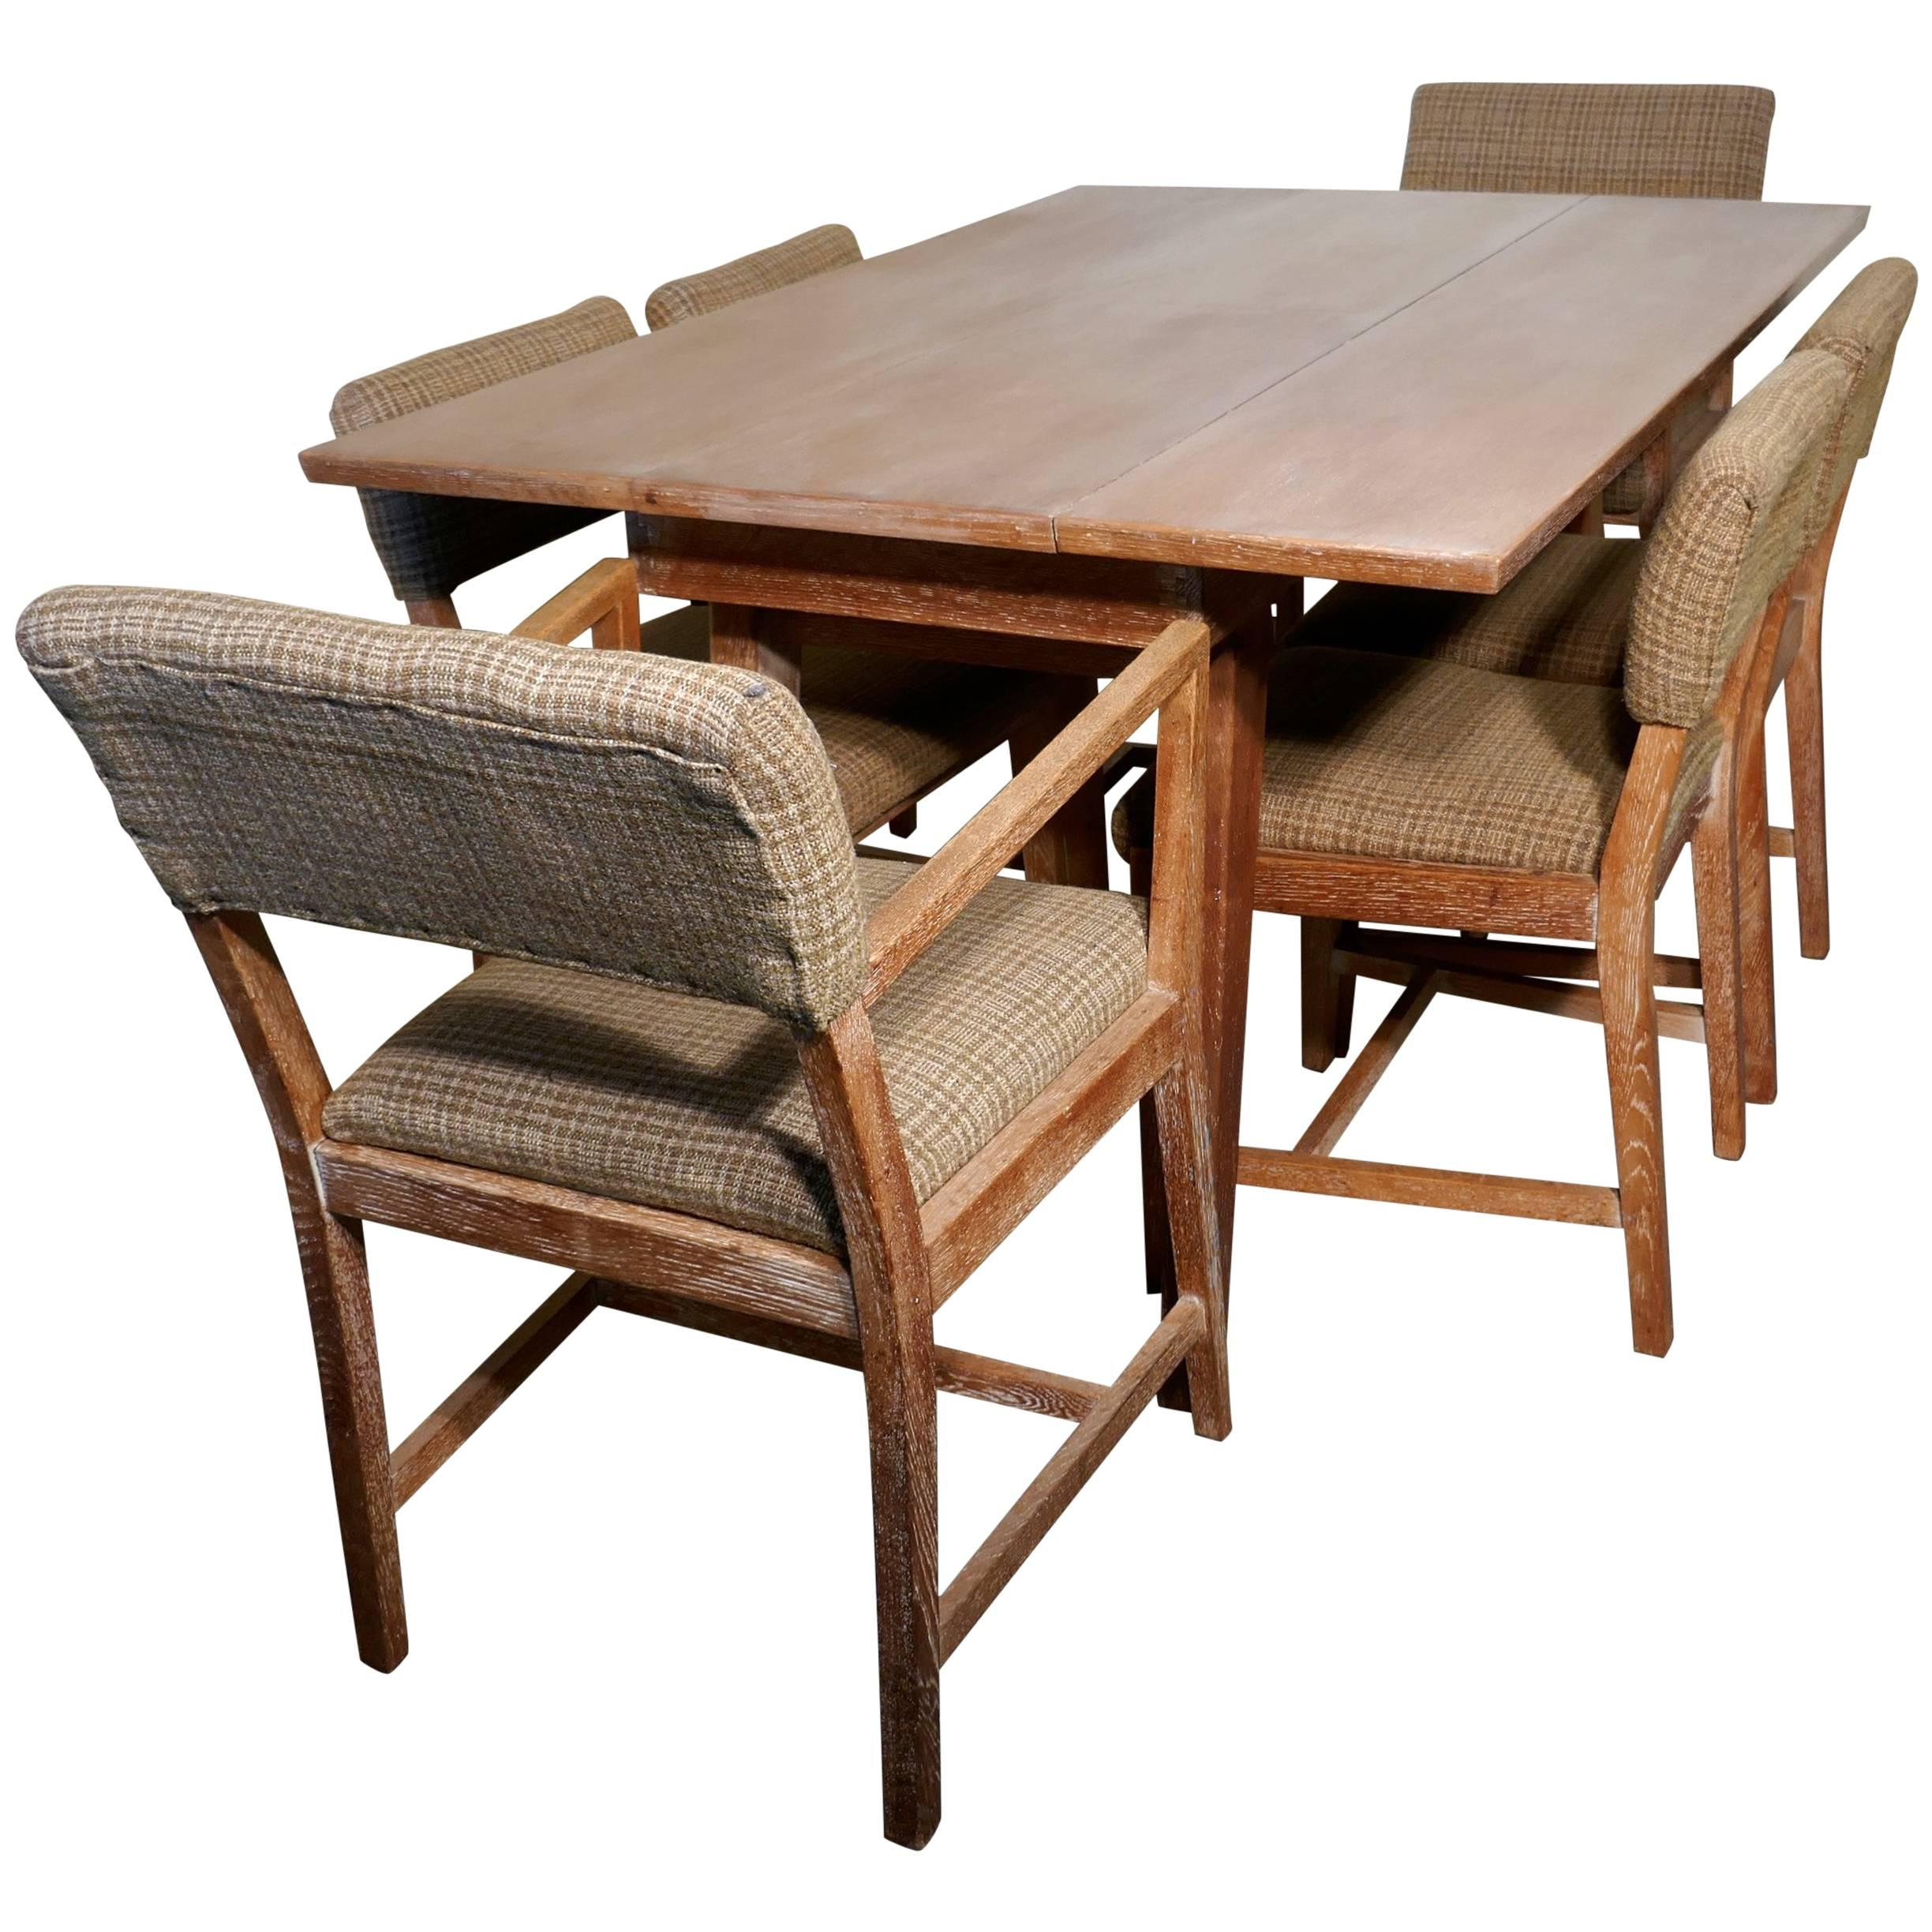 Extending Oak Table 1950s Limed Oak Extending Dining Table And Set Of Six Chairs